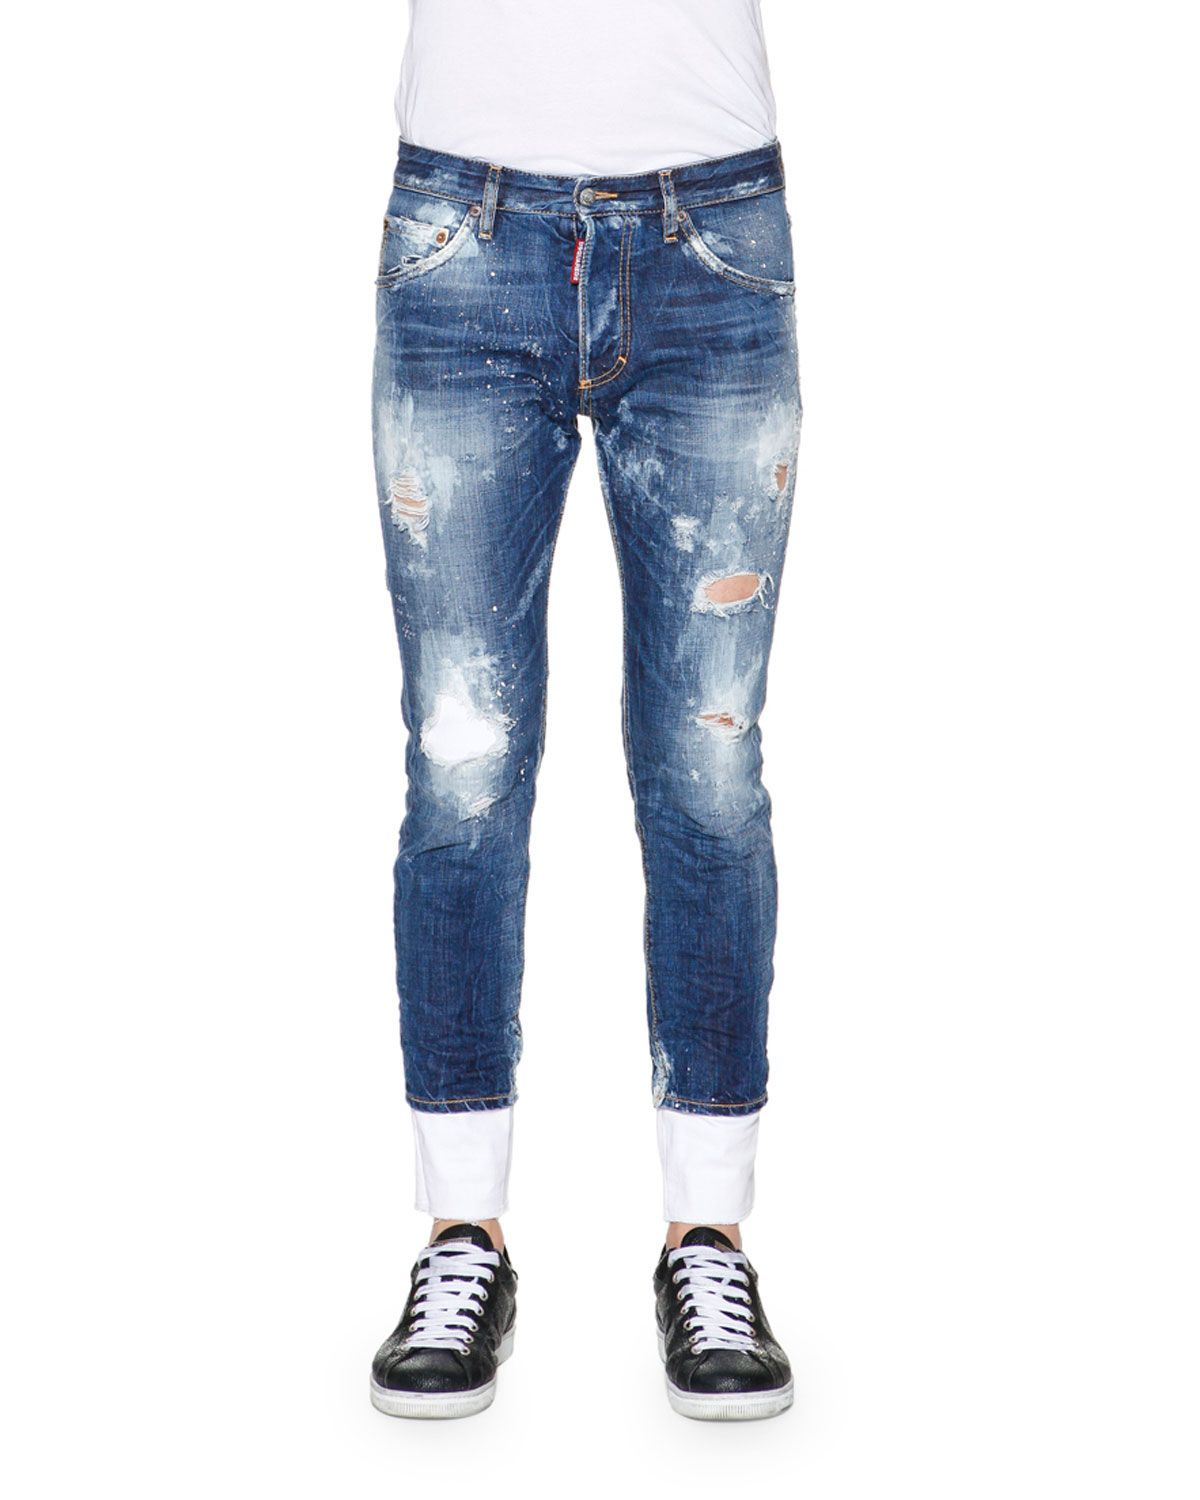 db82847193 DSquared2 denim jeans with bleached and distressed details. Five-pocket  style. Leather logo patch at back waist. Whiskering at thighs  ripped  details.